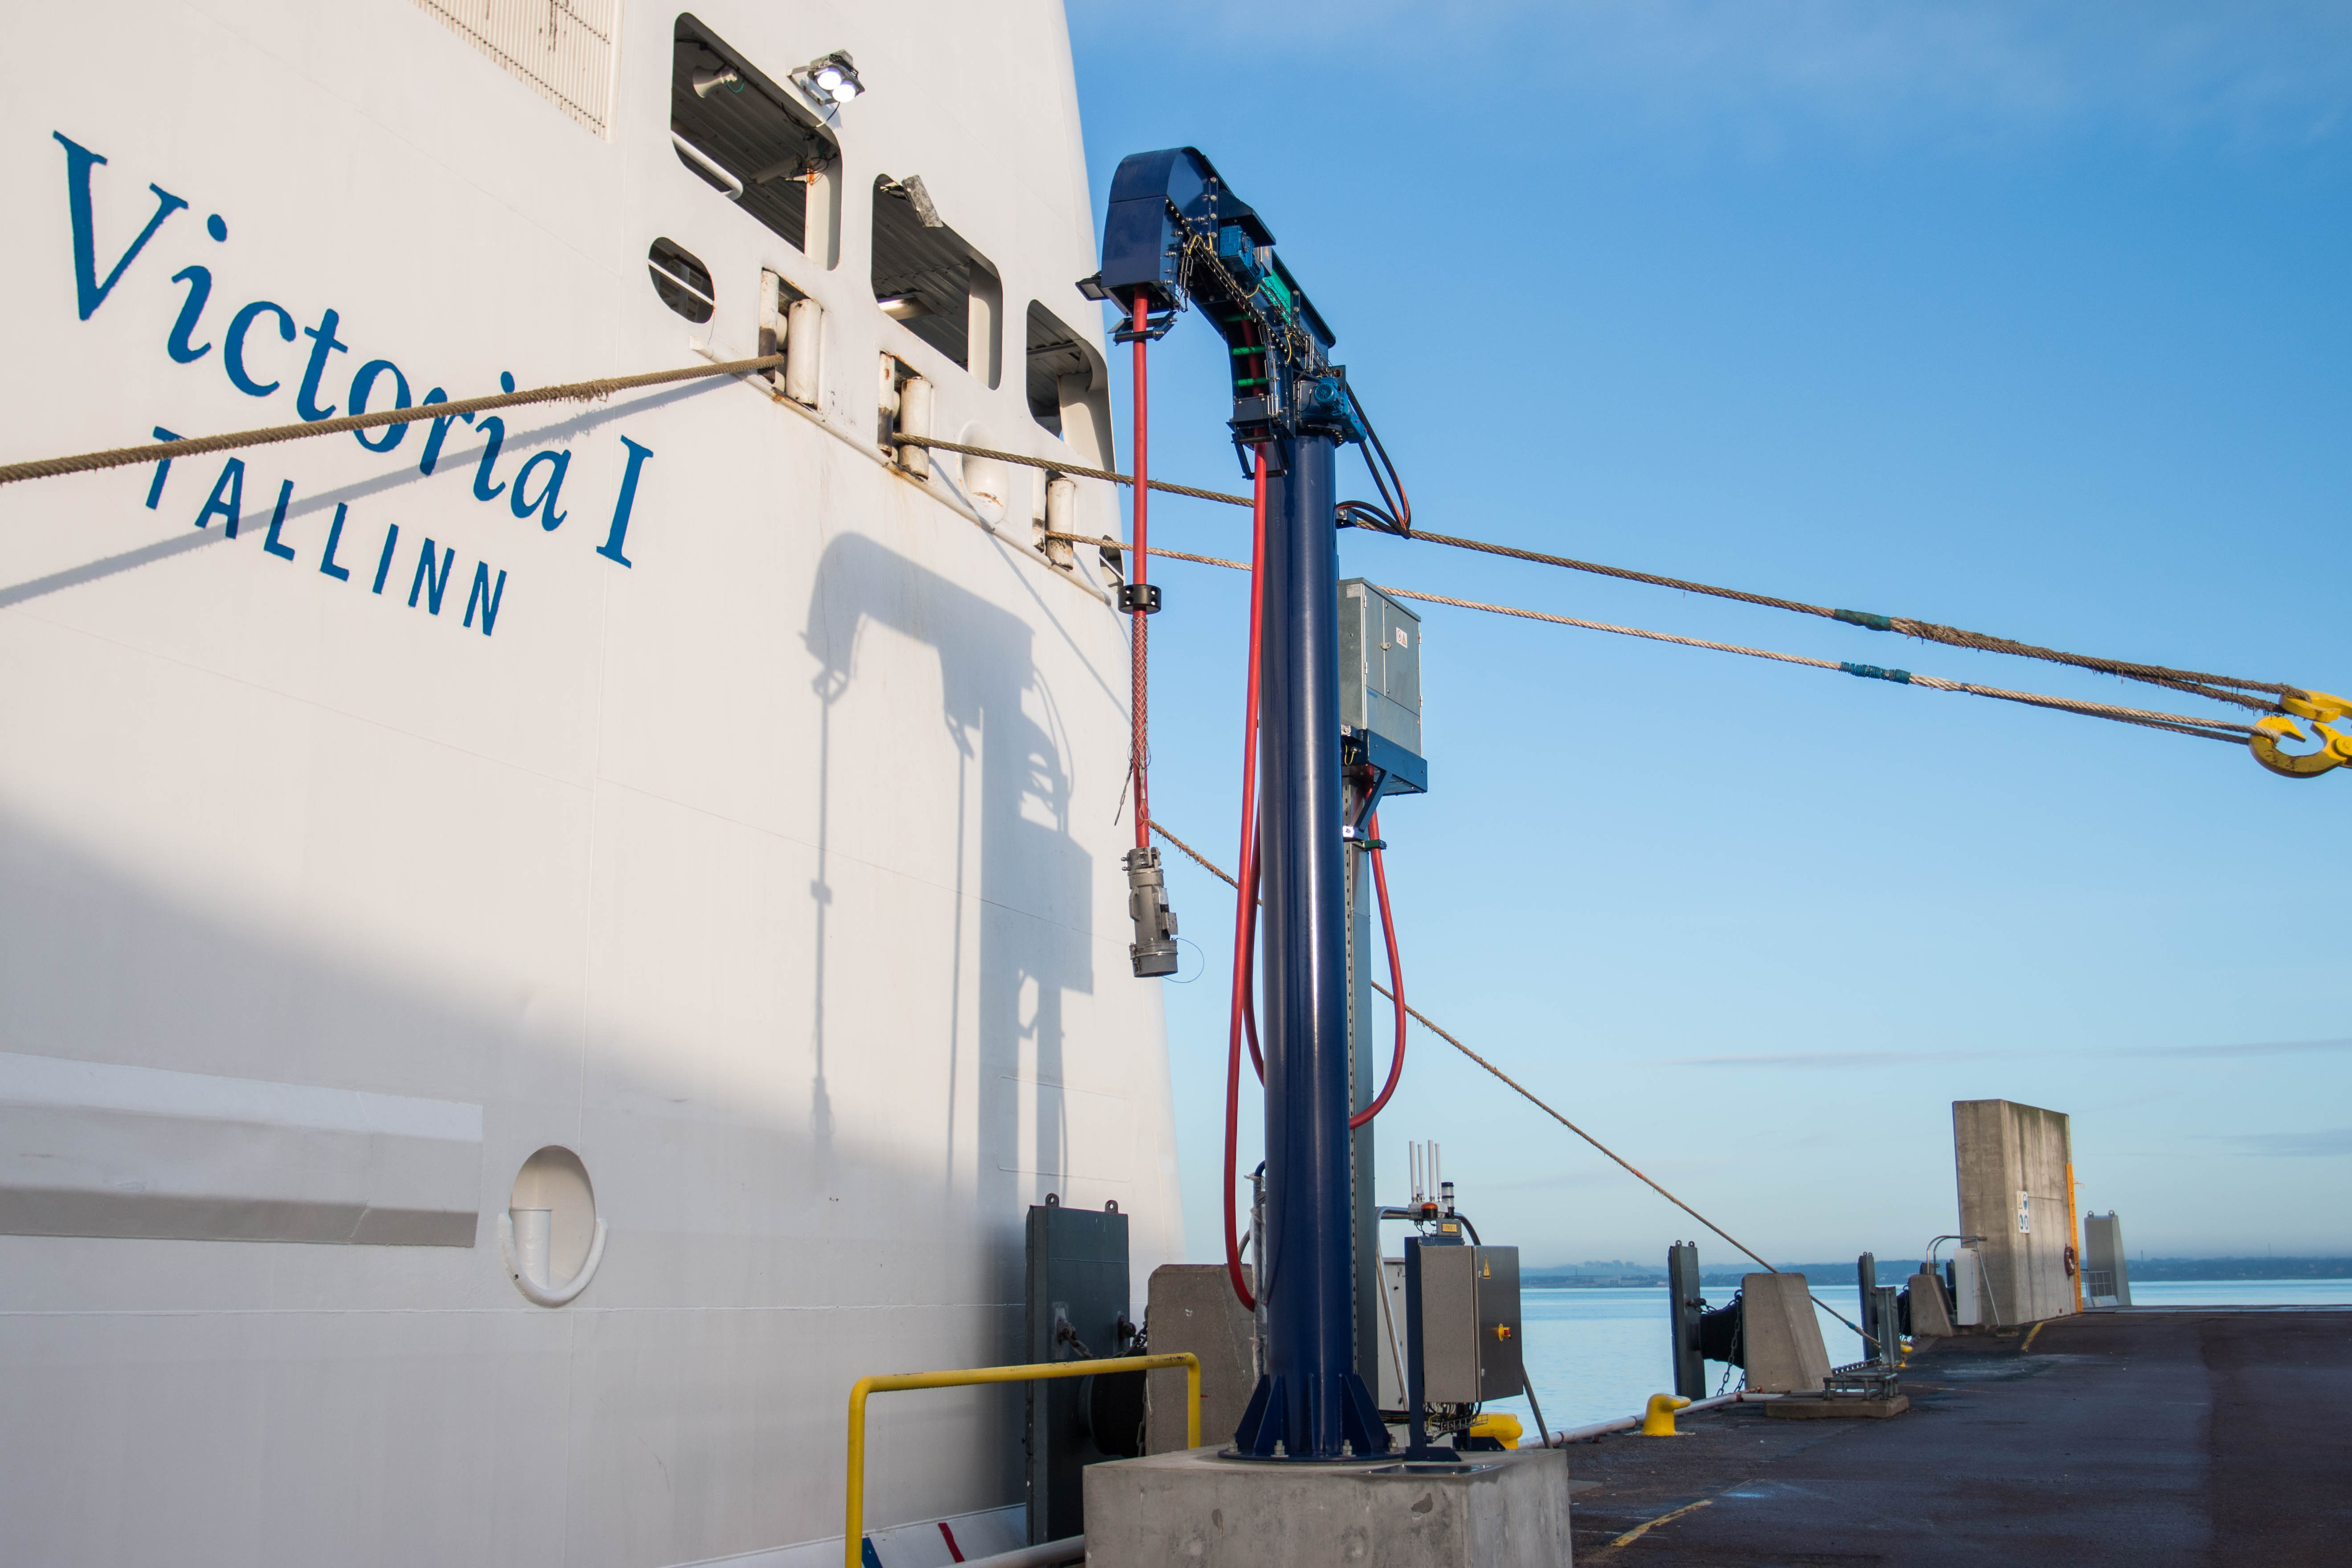 Case study: Innovation and Cooperation bring shore power to the Port of Tallinn